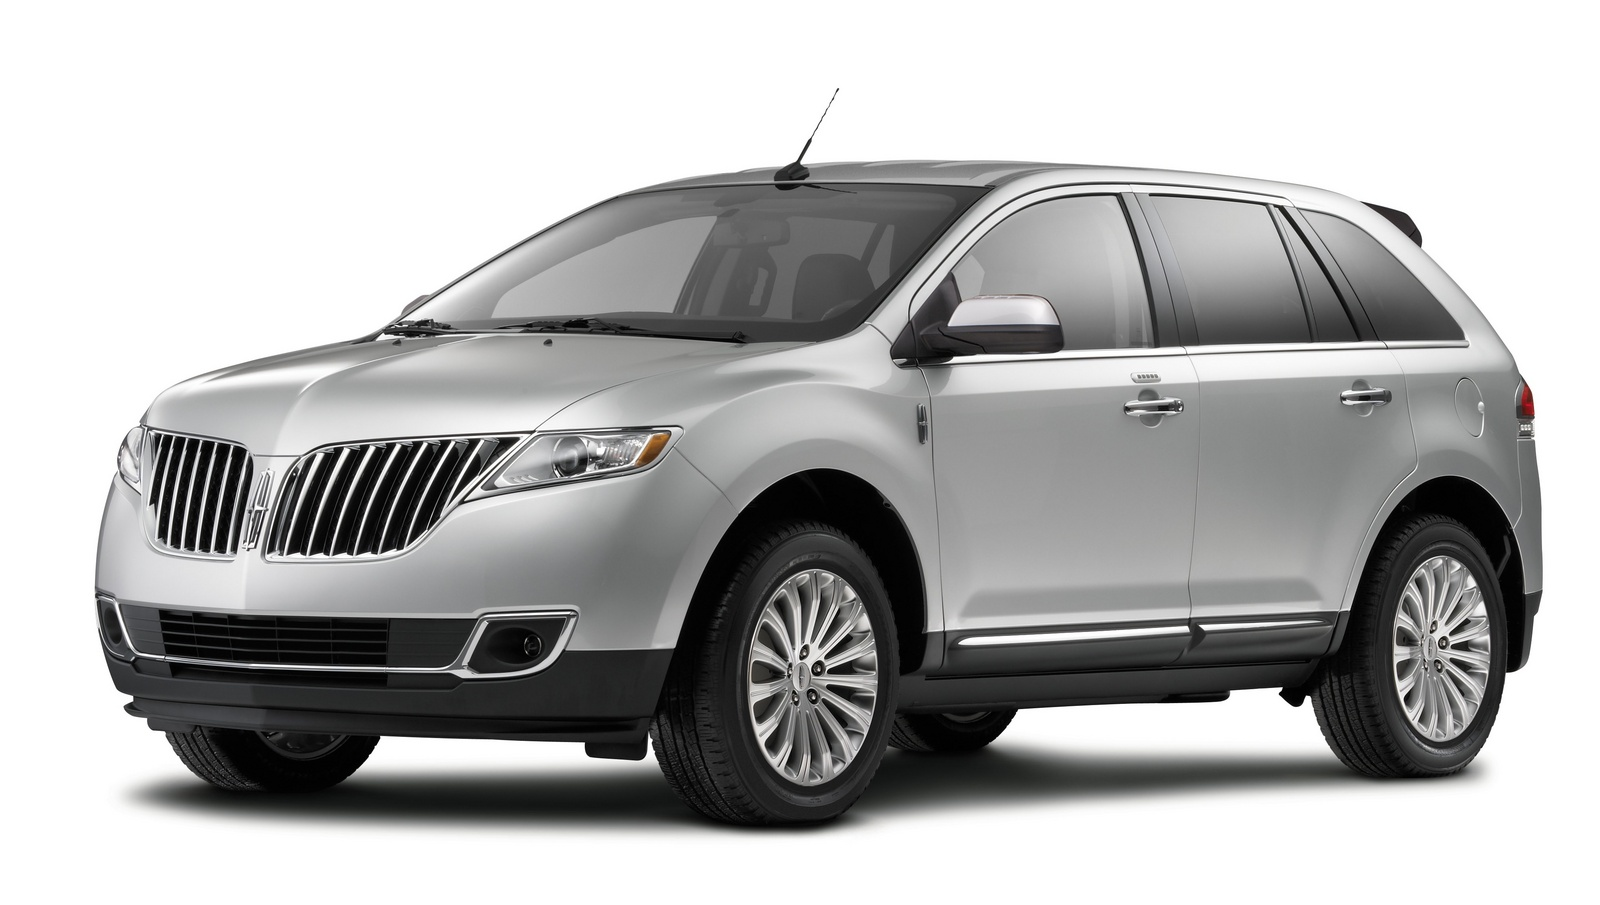 New 2014 / 2015 Lincoln MKX For Sale